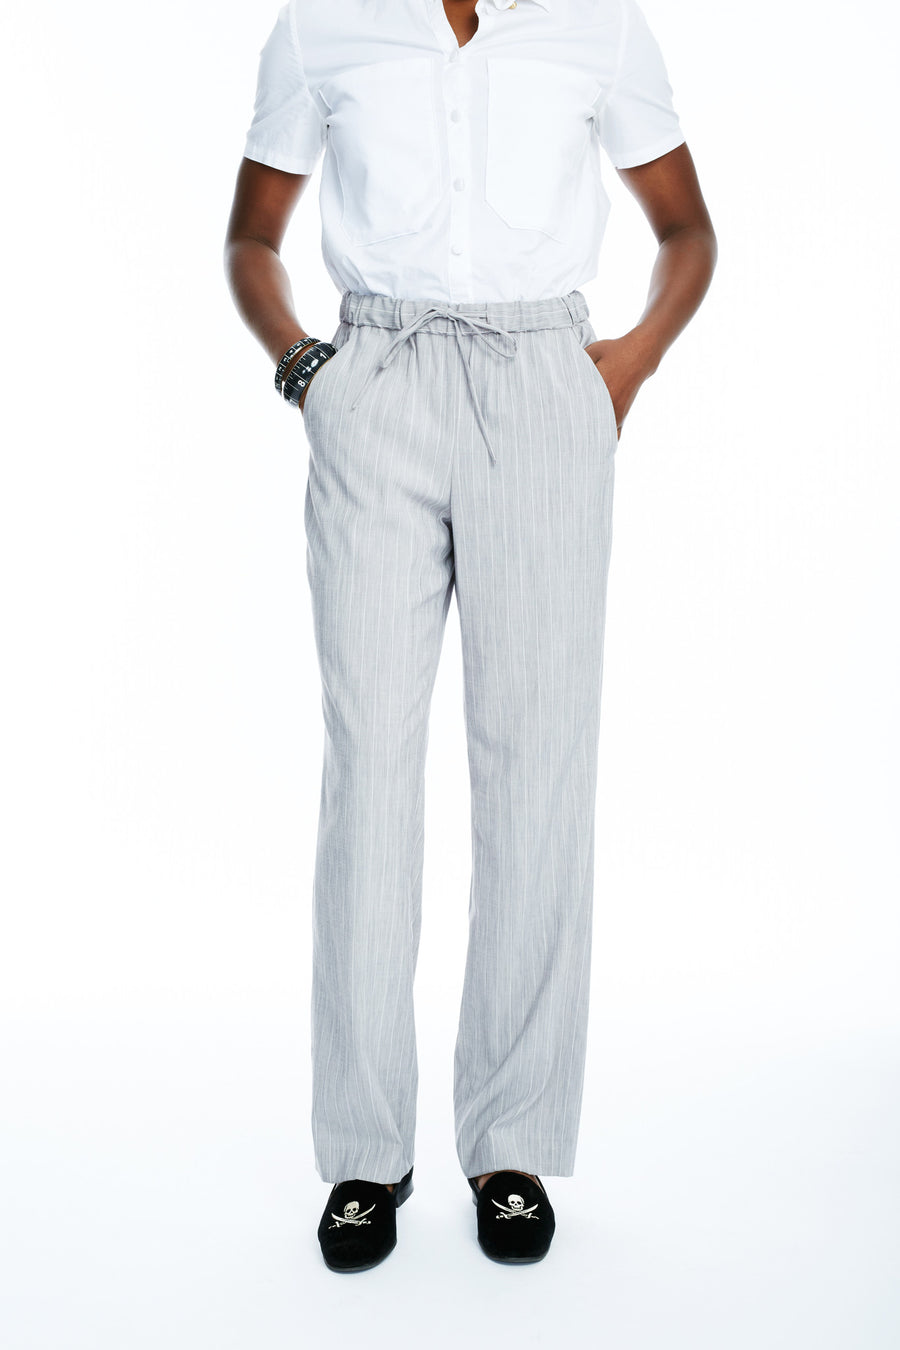 TWIG Pinstripe Classic Pant